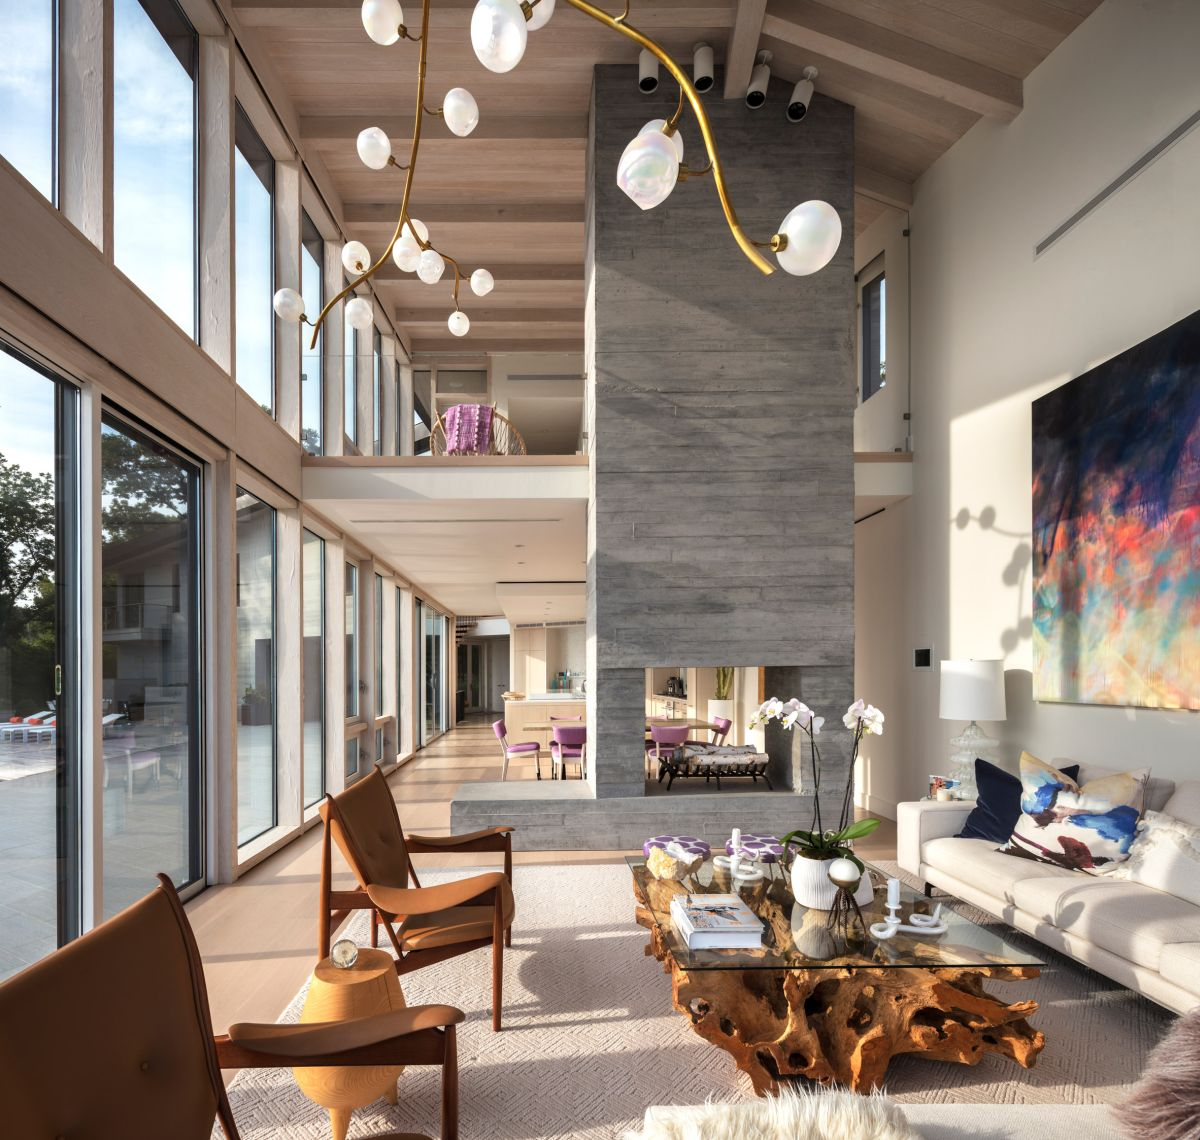 1561104968 670 swoon worthy homes in hamptons that work with the natural landscape - Swoon-Worthy Homes in Hamptons That Work With the Natural Landscape